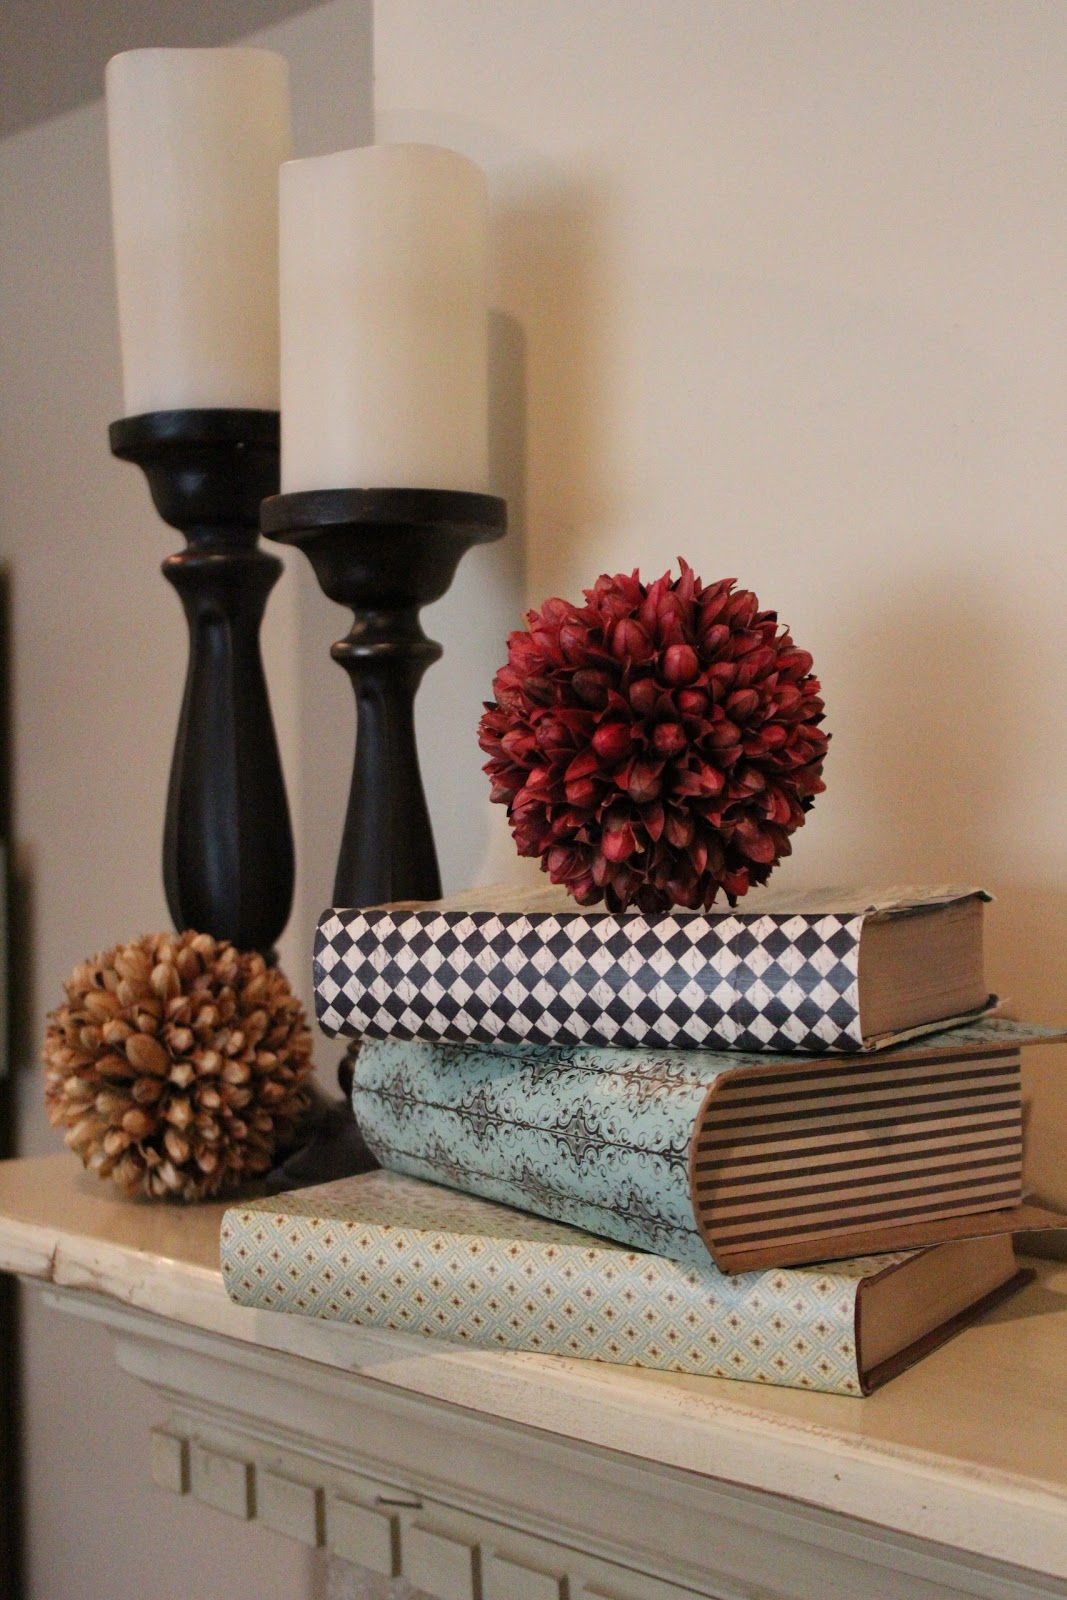 Diy Hardcover Book : Mommy vignettes diy hardcover book decor